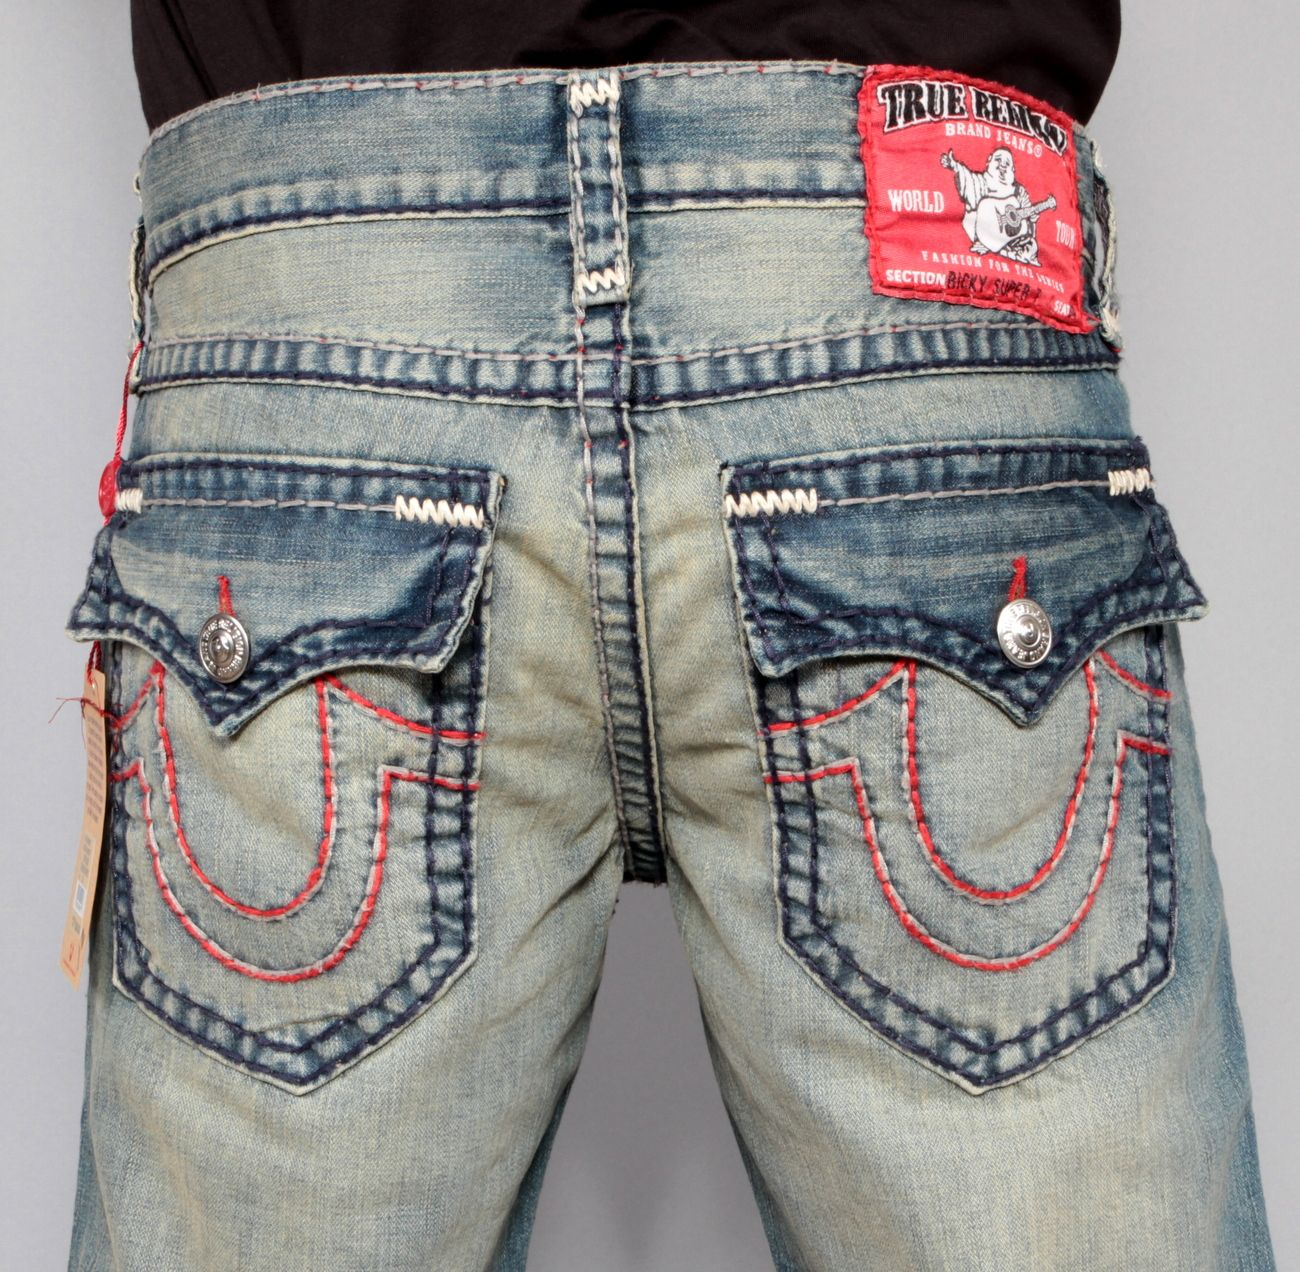 7bc549619 Red True Religion Jeans With White Stitching